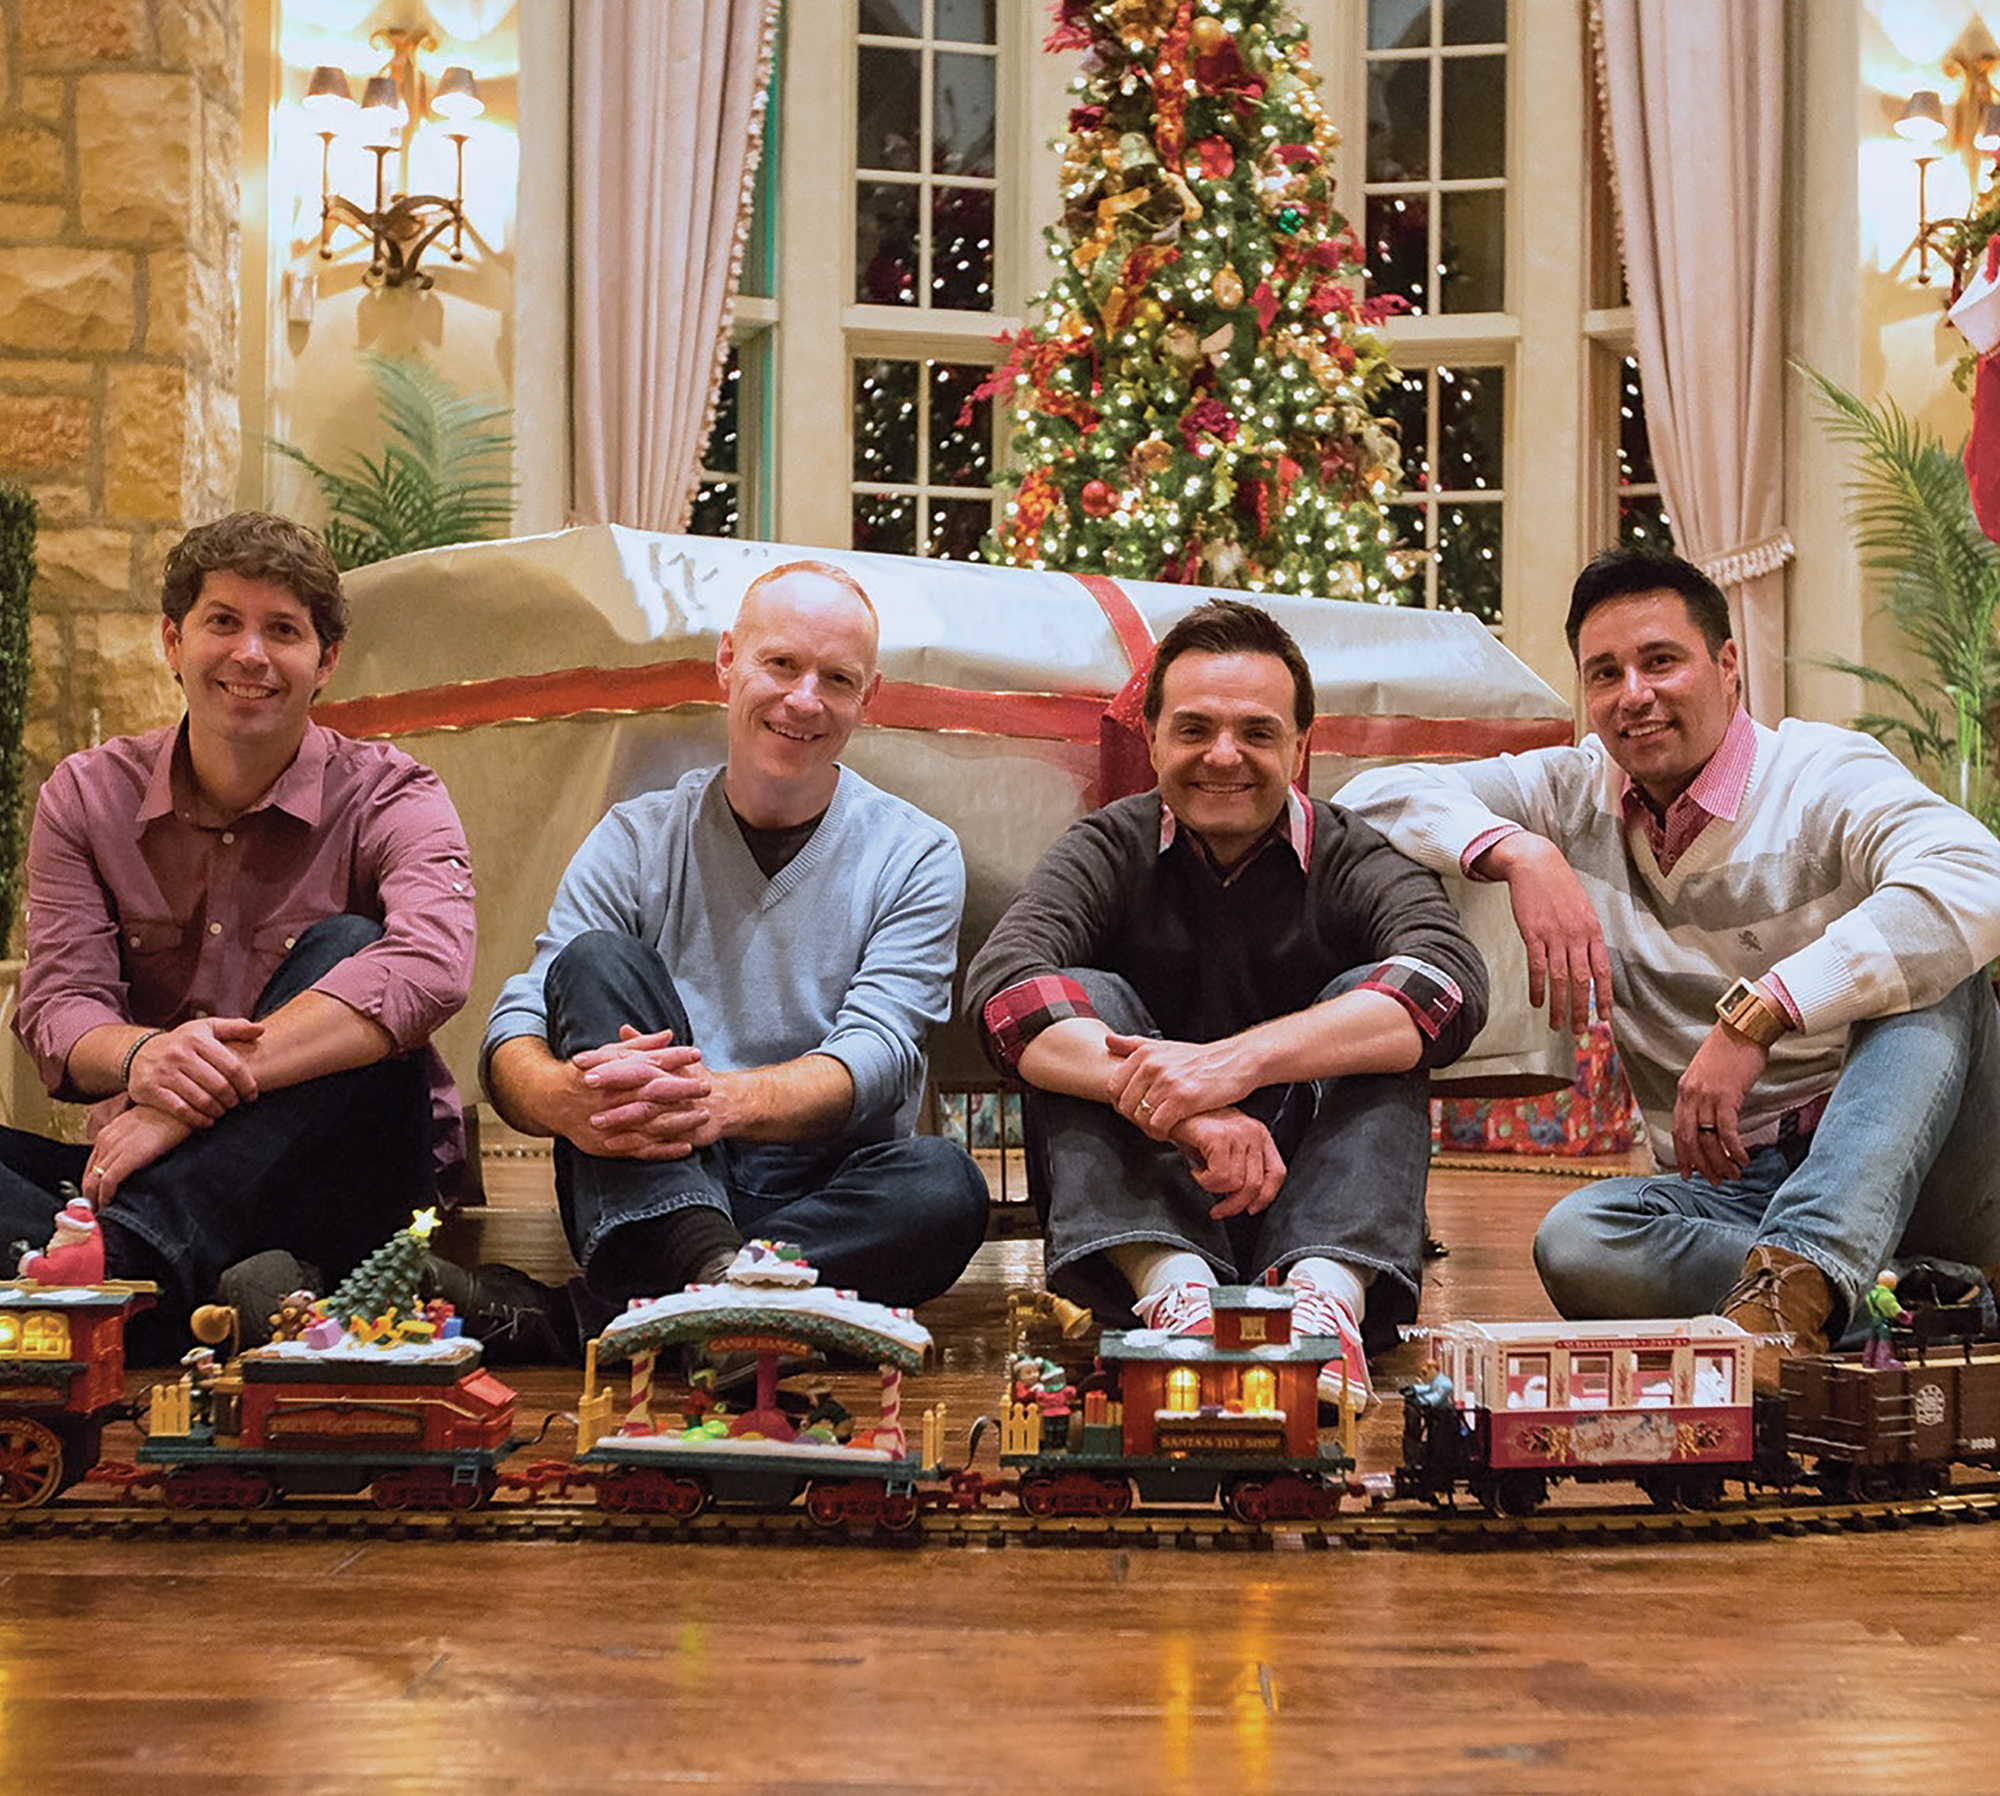 win tickets to see the piano guys live plus this tpgchristmas prize pack